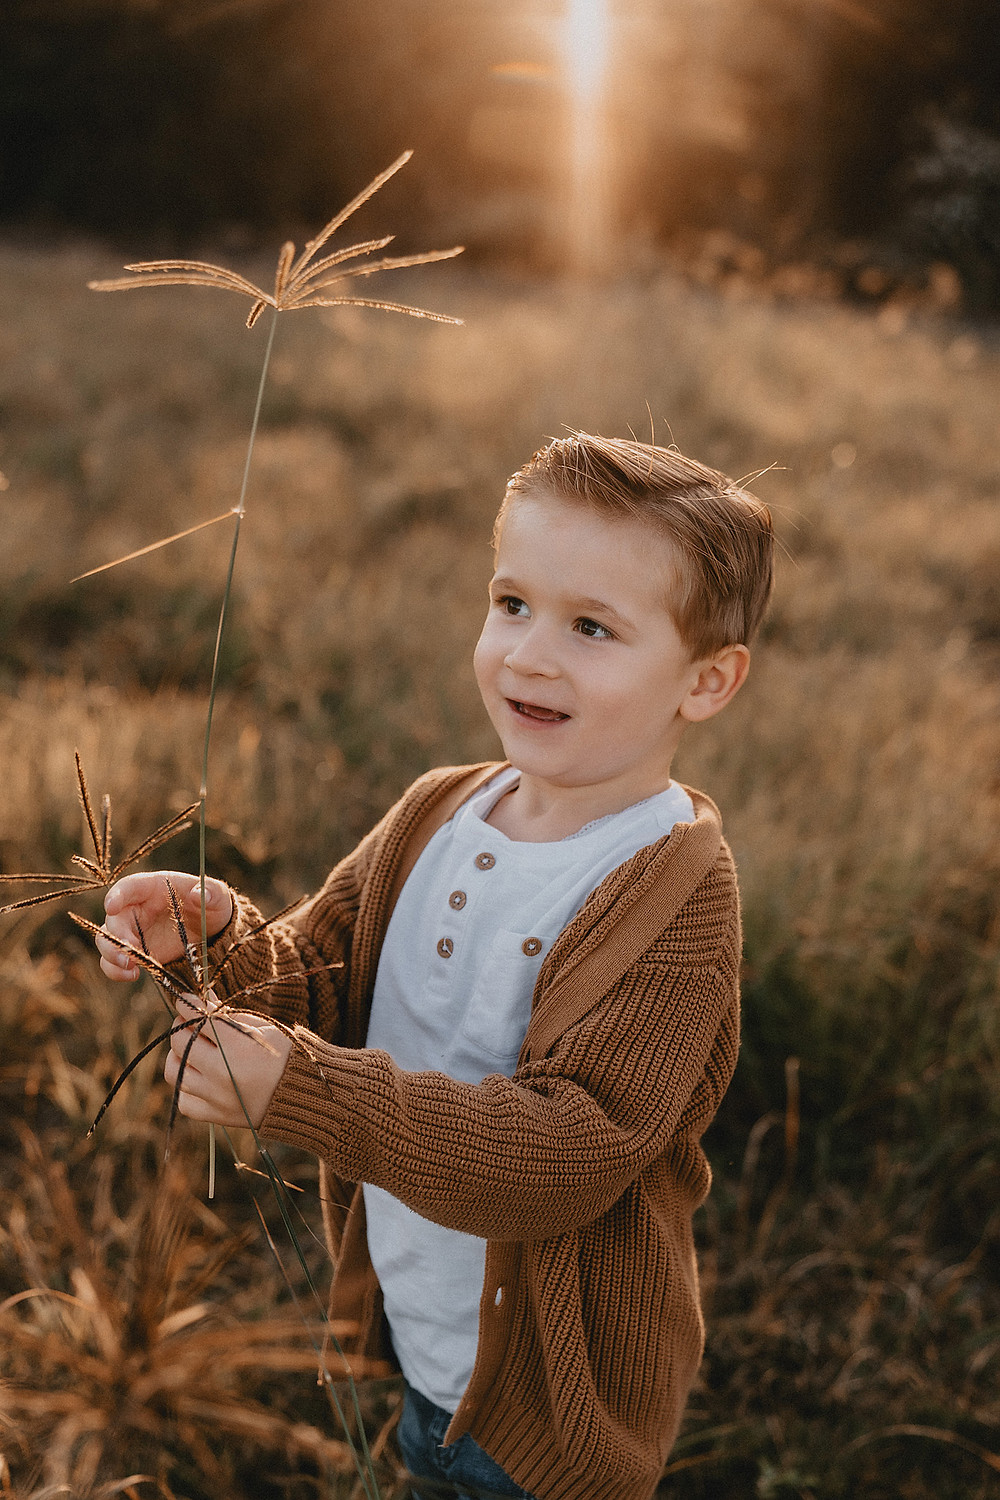 Boy standing in a field in a white top and brown knitted jumper holding long grass